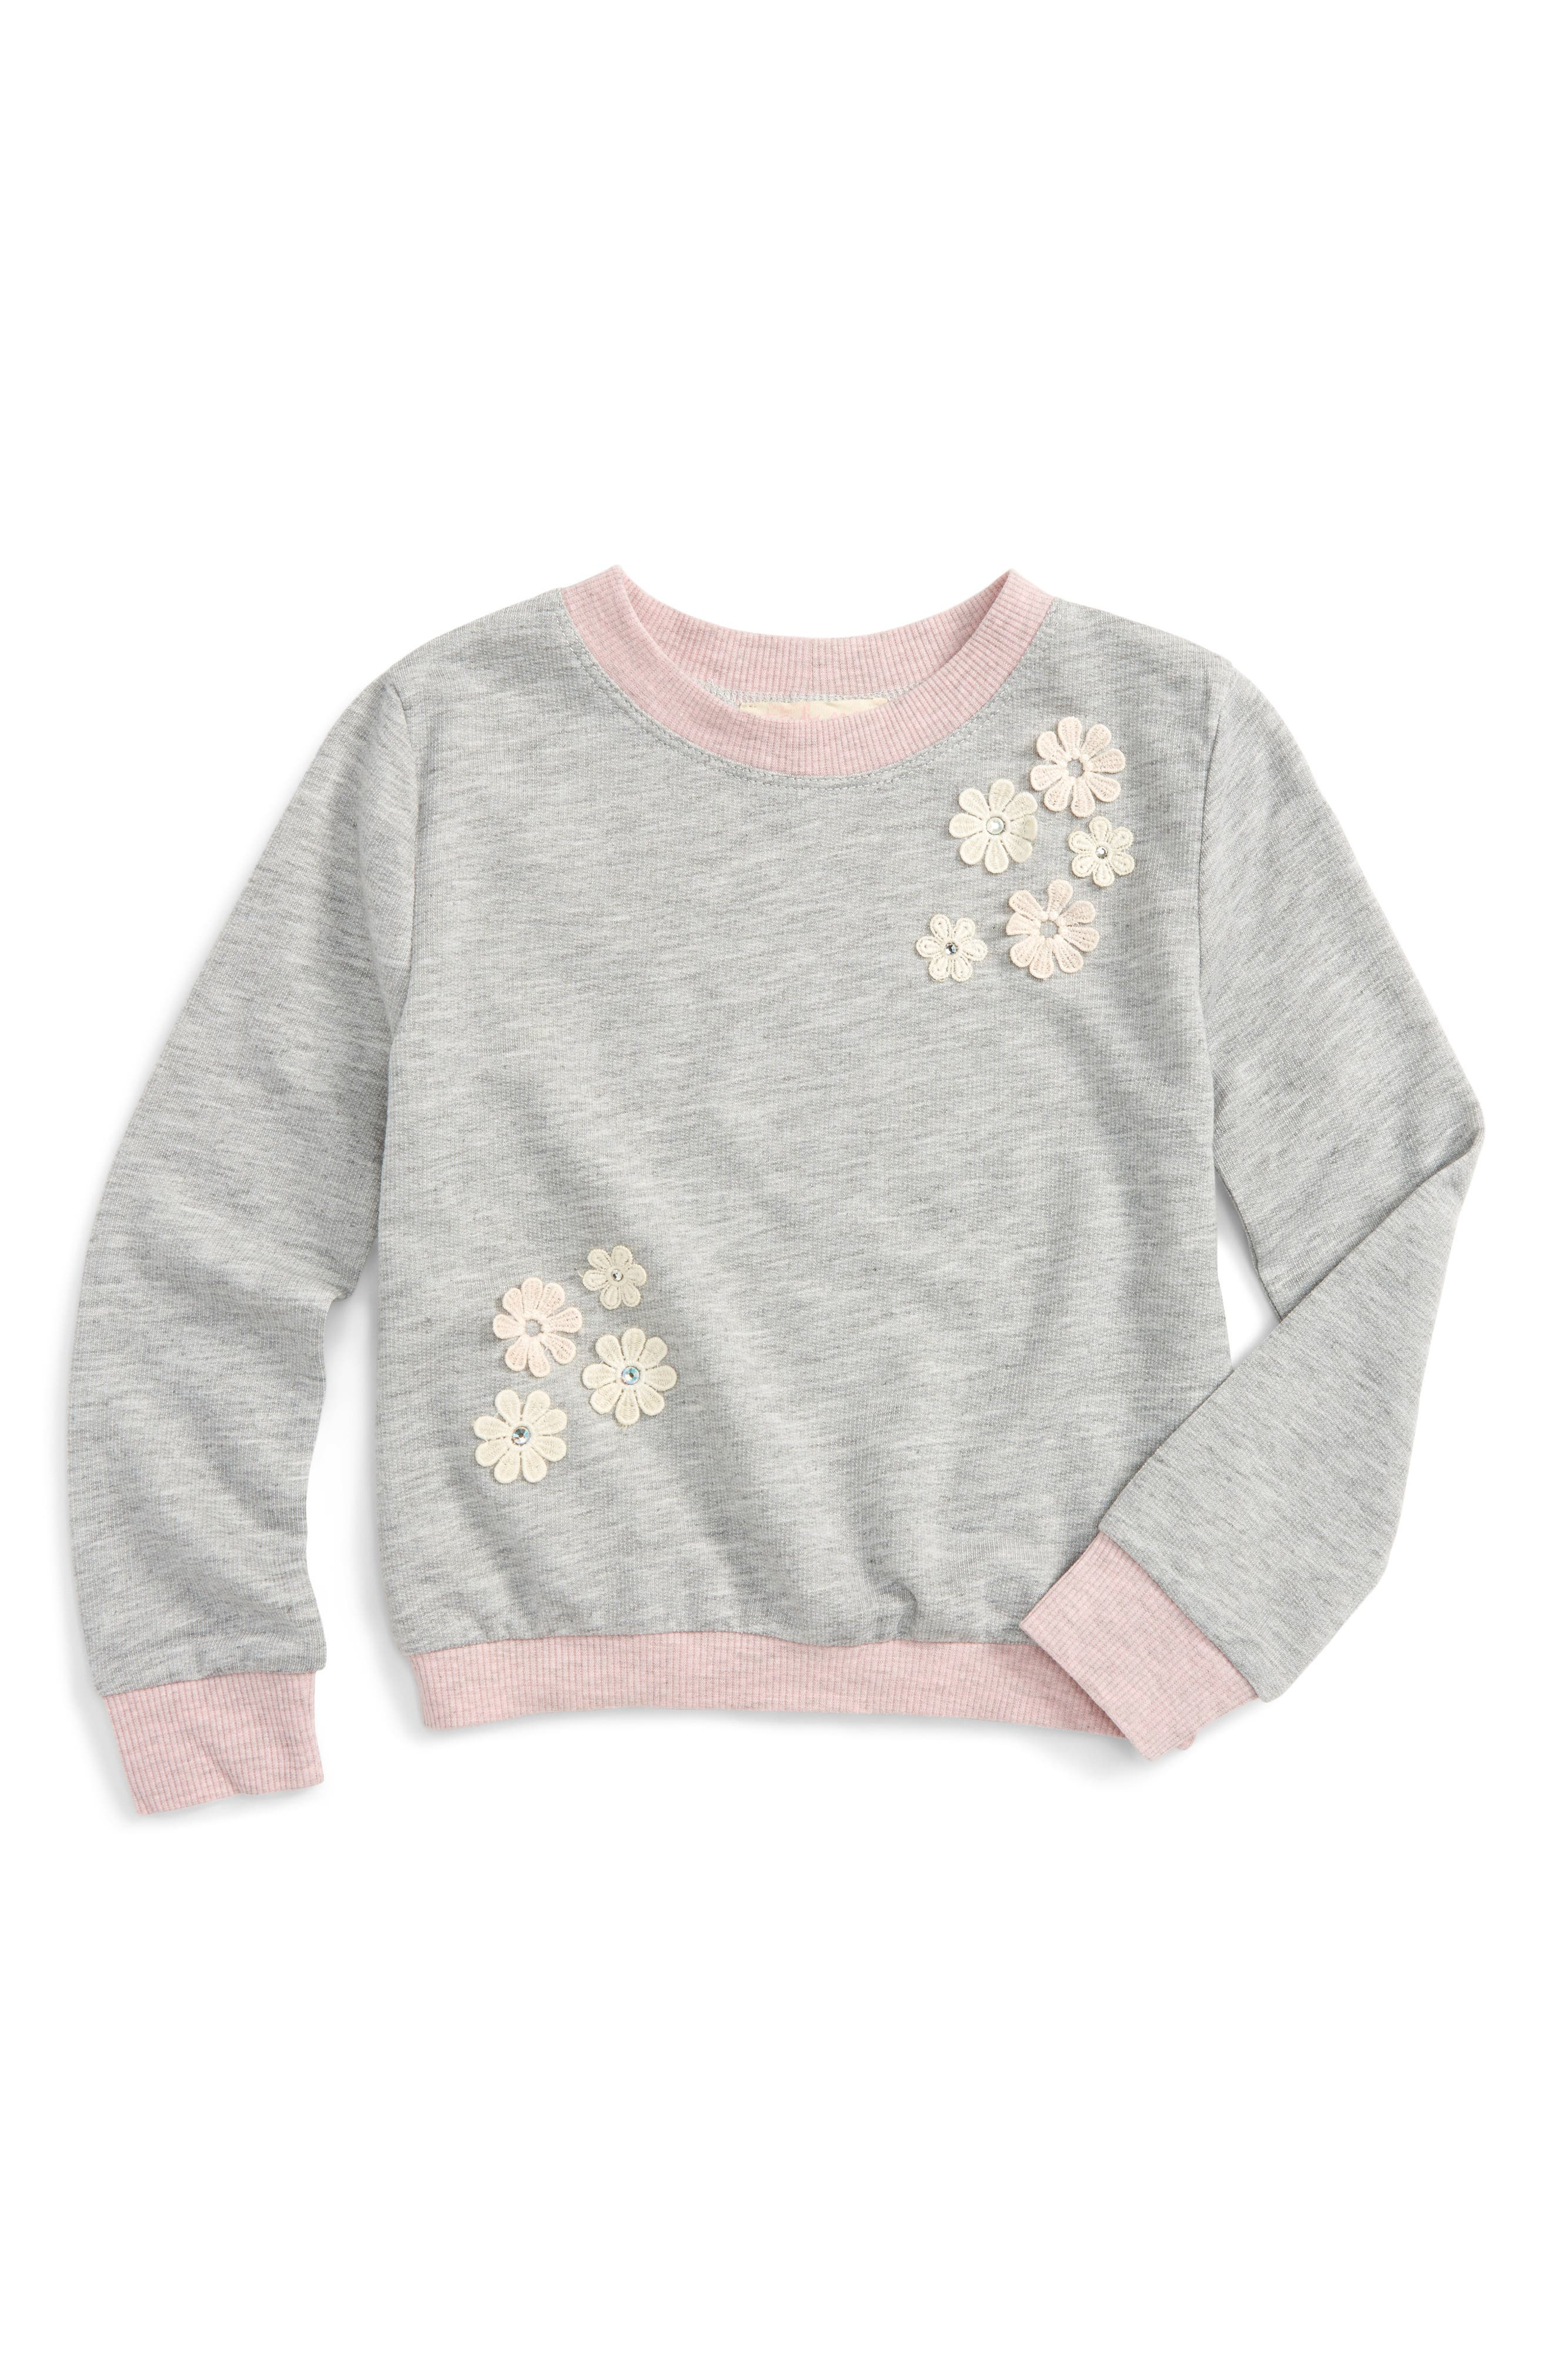 Truly Me Floral Appliqué Sweatshirt (Toddler Girls & Little Girls)